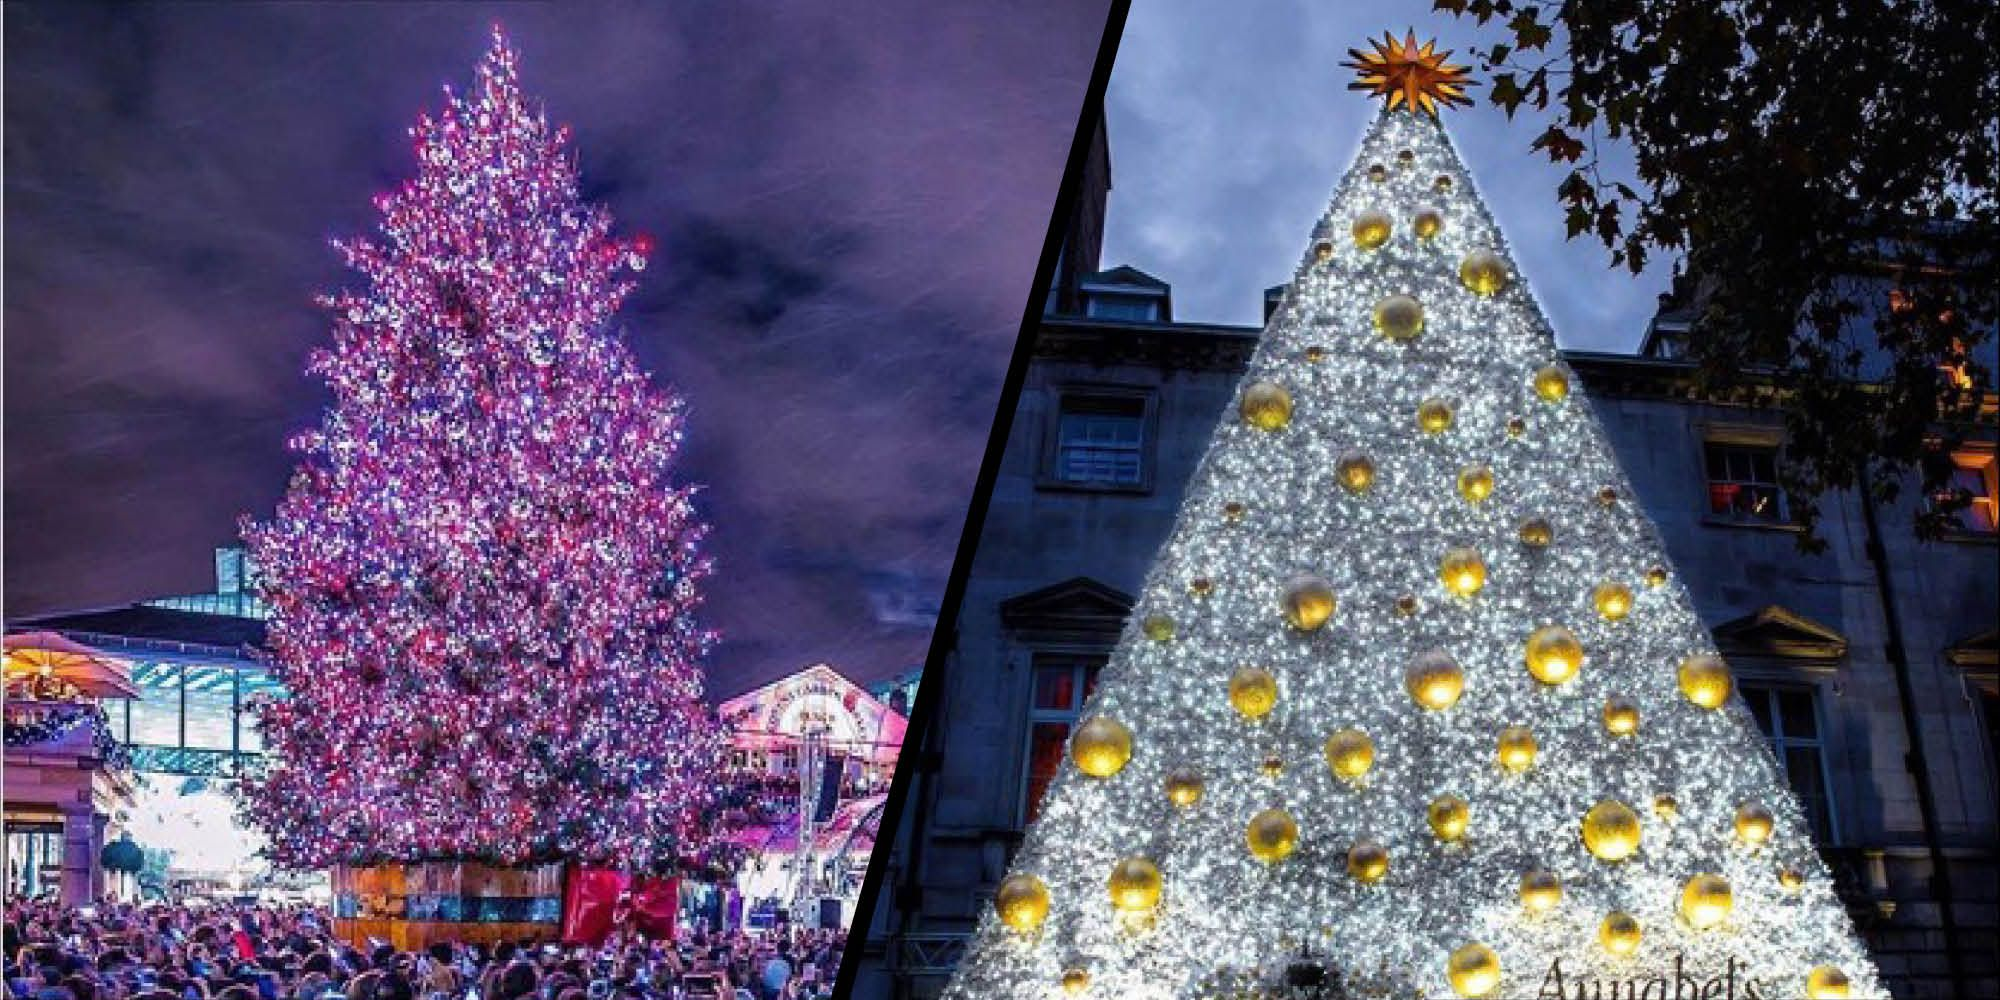 The most stylish Christmas trees